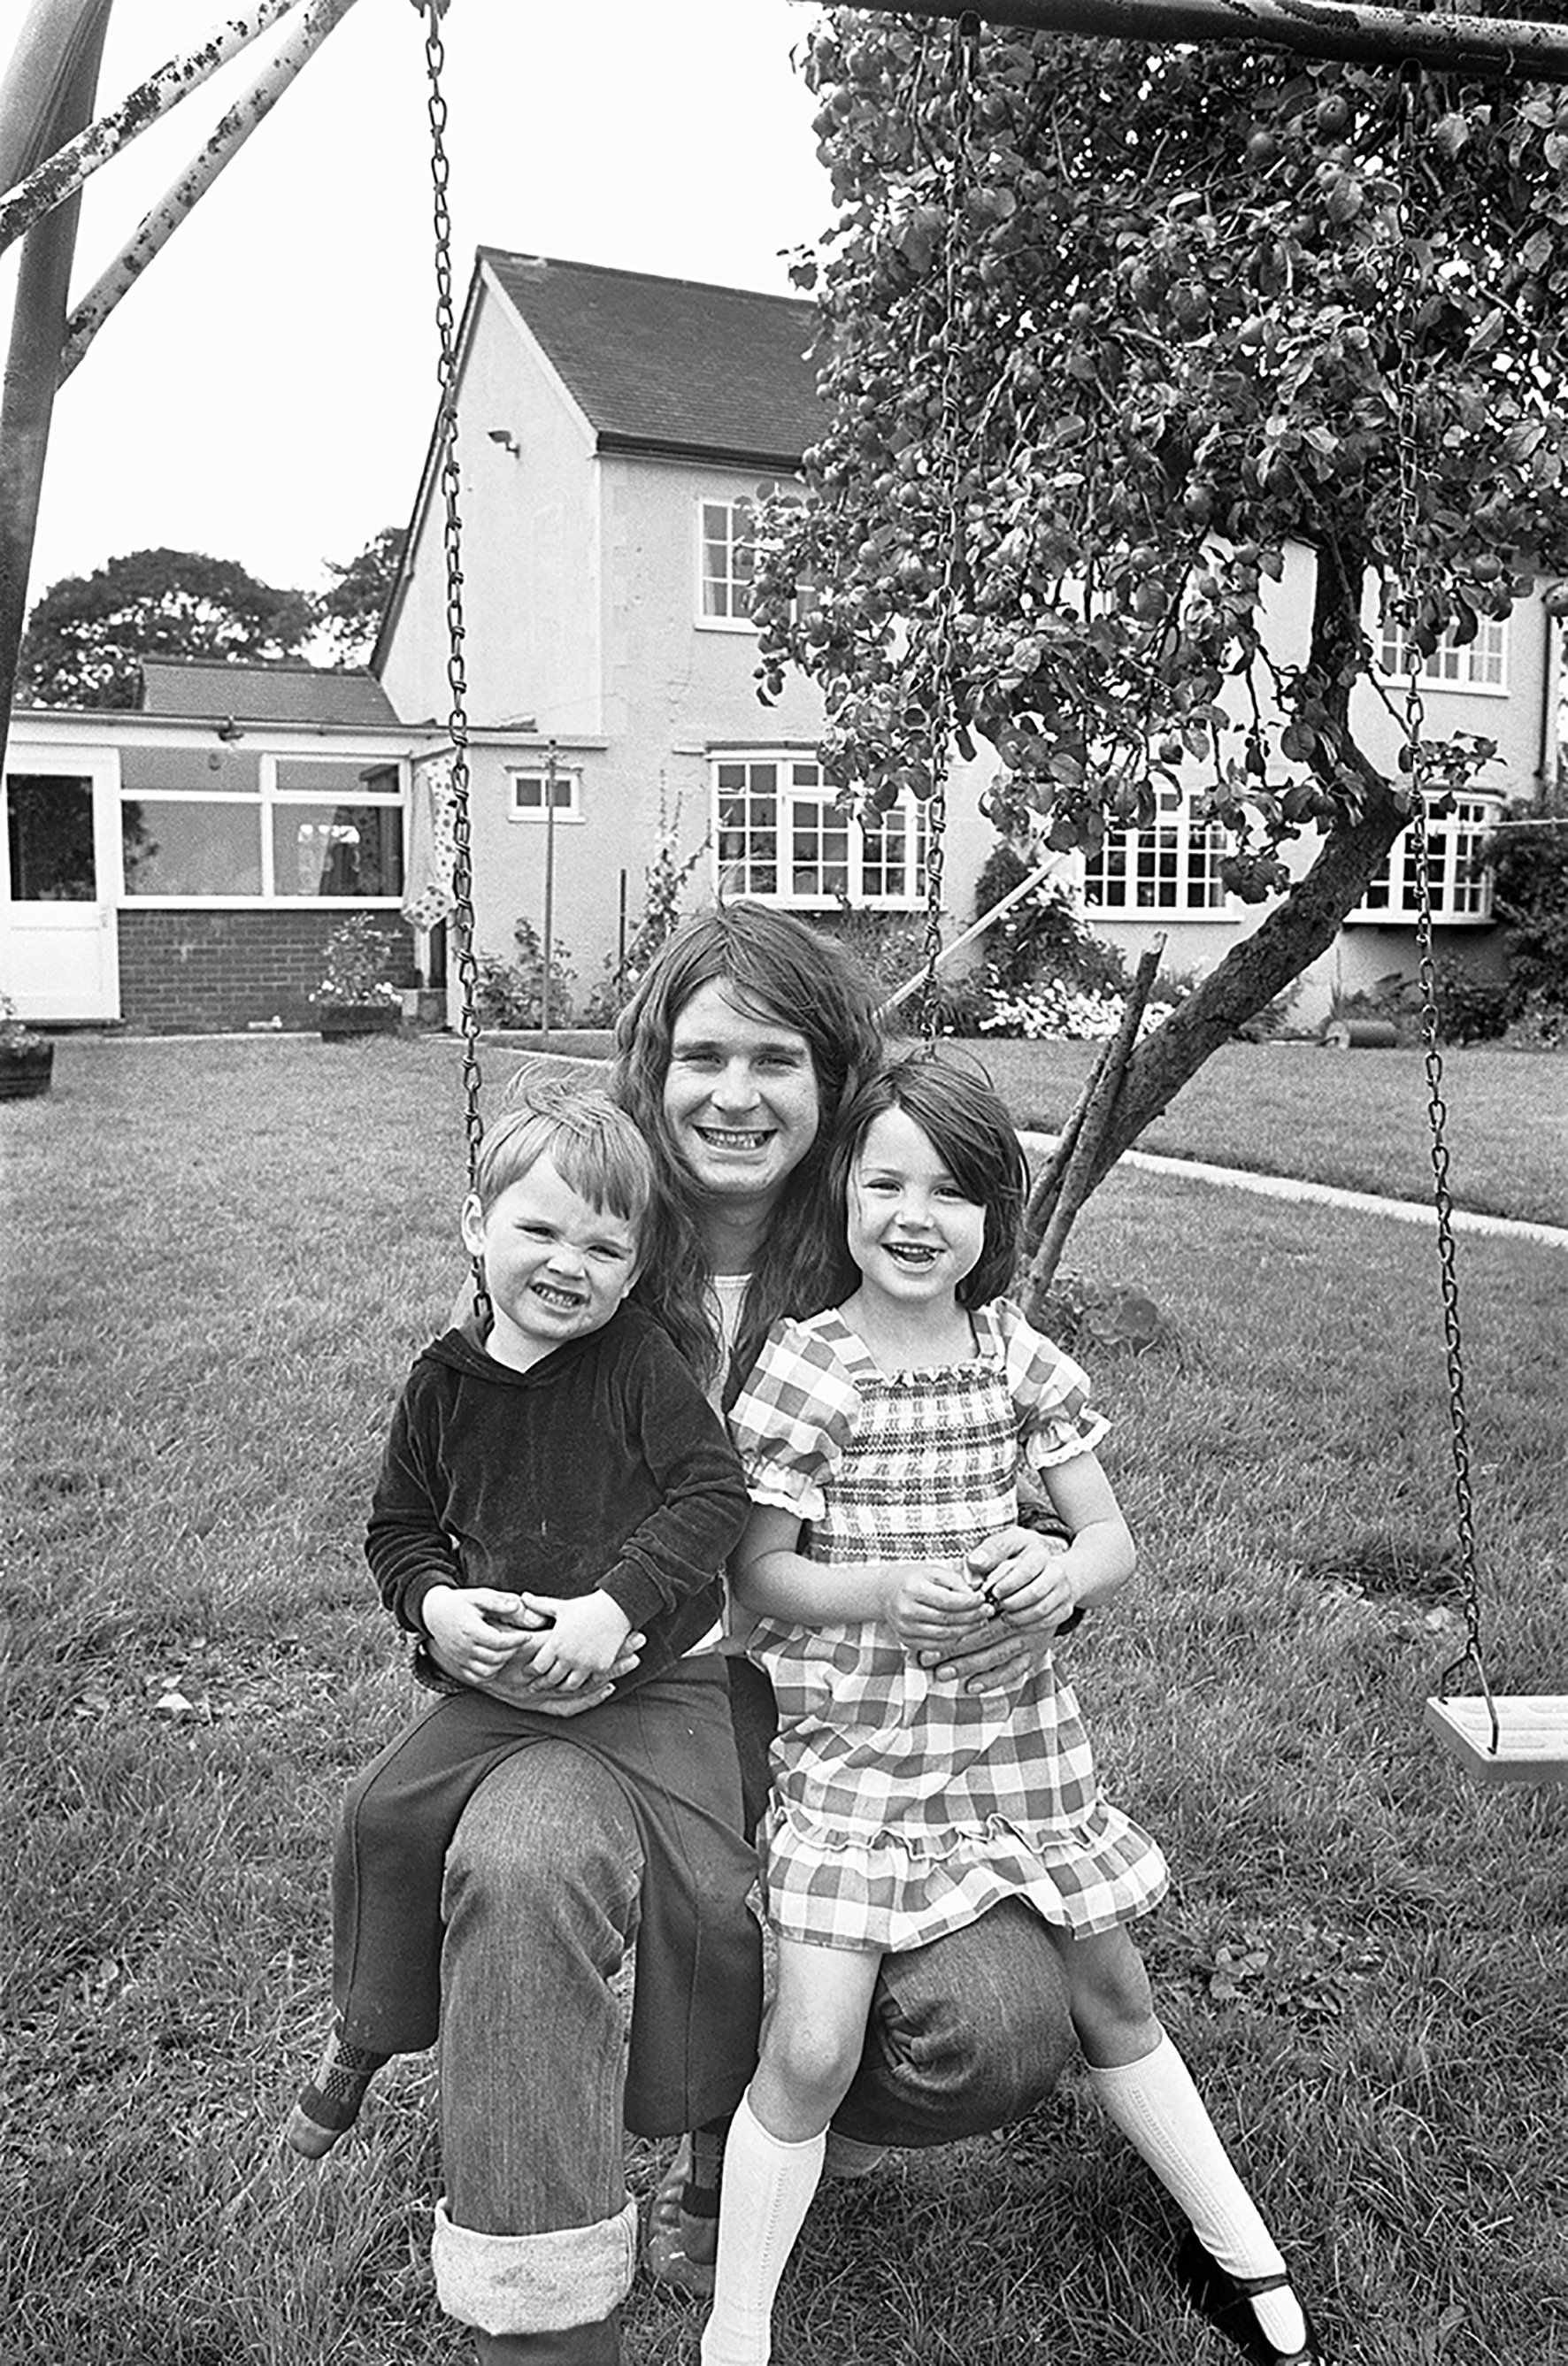 Ozzy Osbourne at home with his children Jessica and Louis, in 1978 | Source: Getty Images